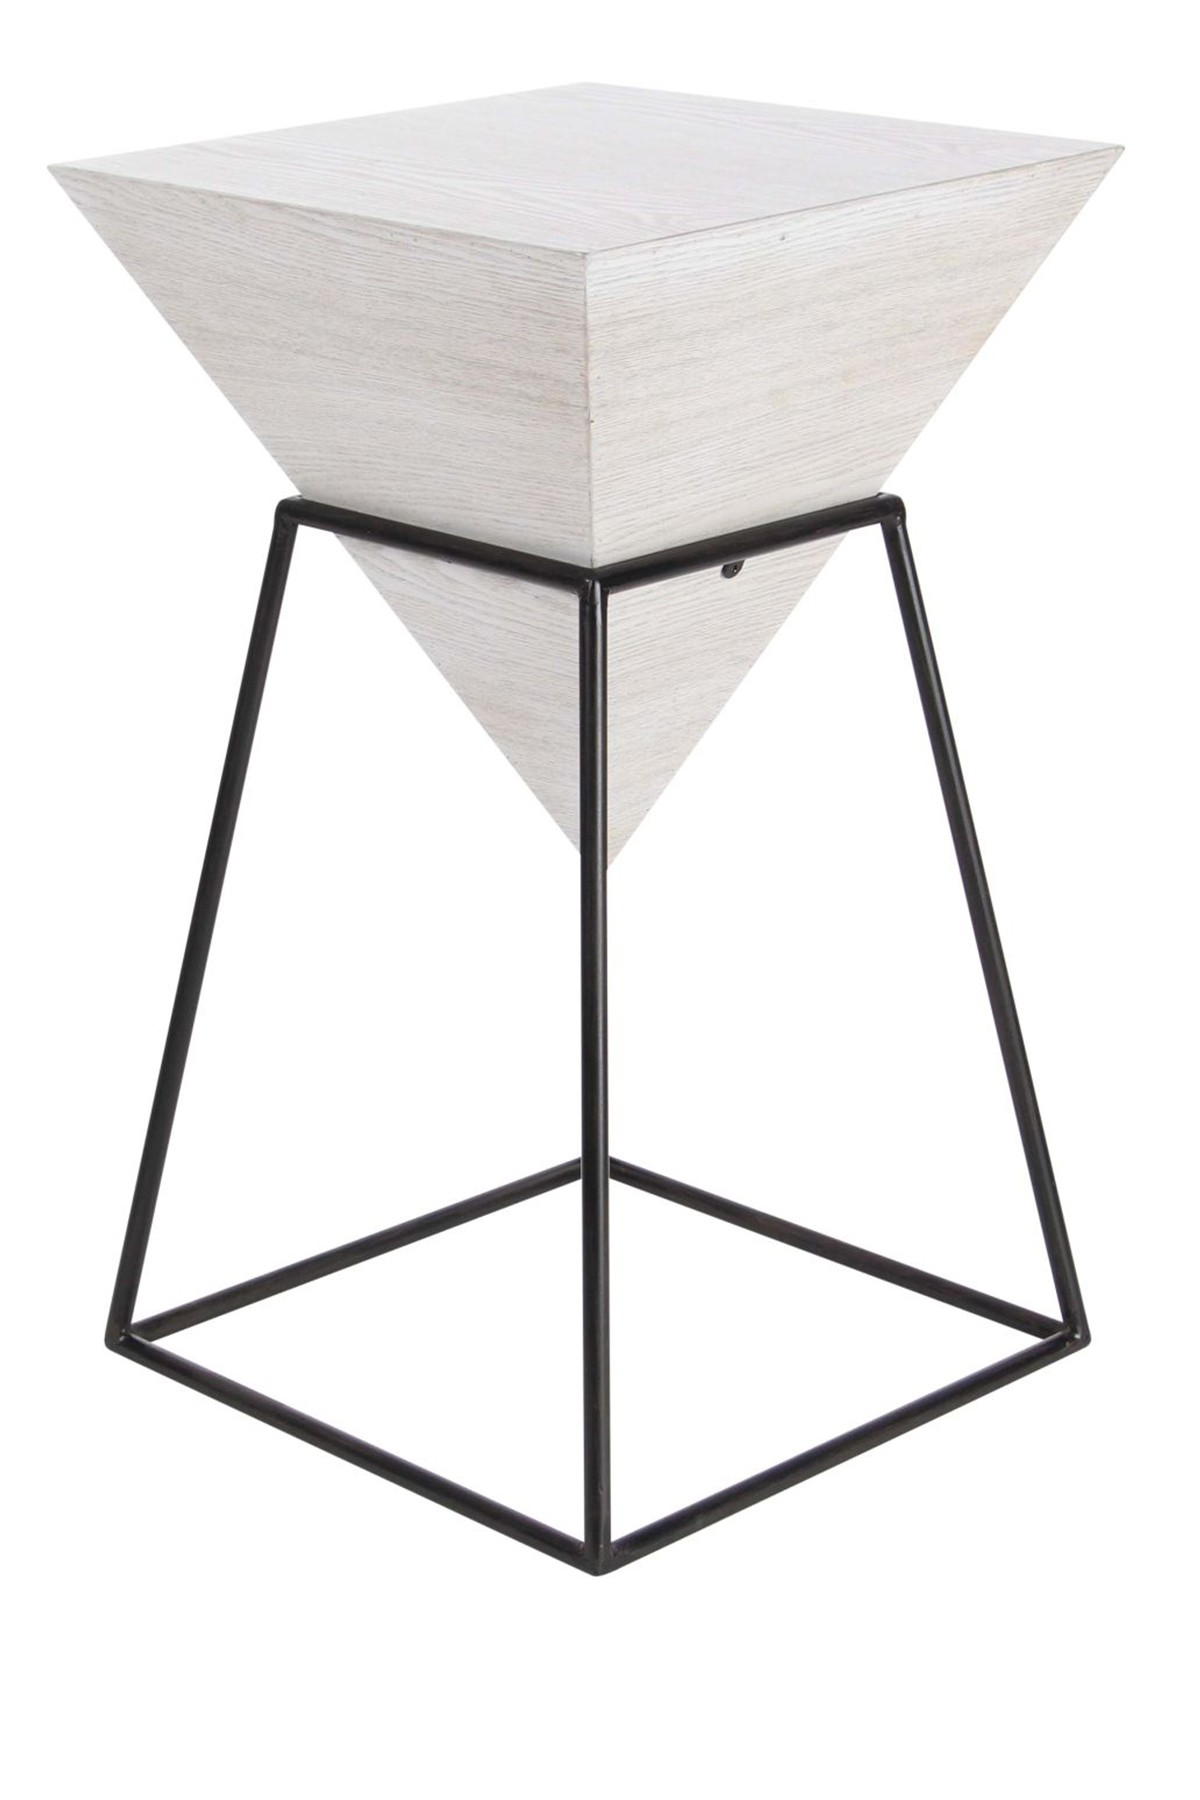 uma wood metal accent table nordstrom rack white oversized reading chair brown outdoor side barn style coffee couch ideas target nate berkus rug retro inspired furniture desktop